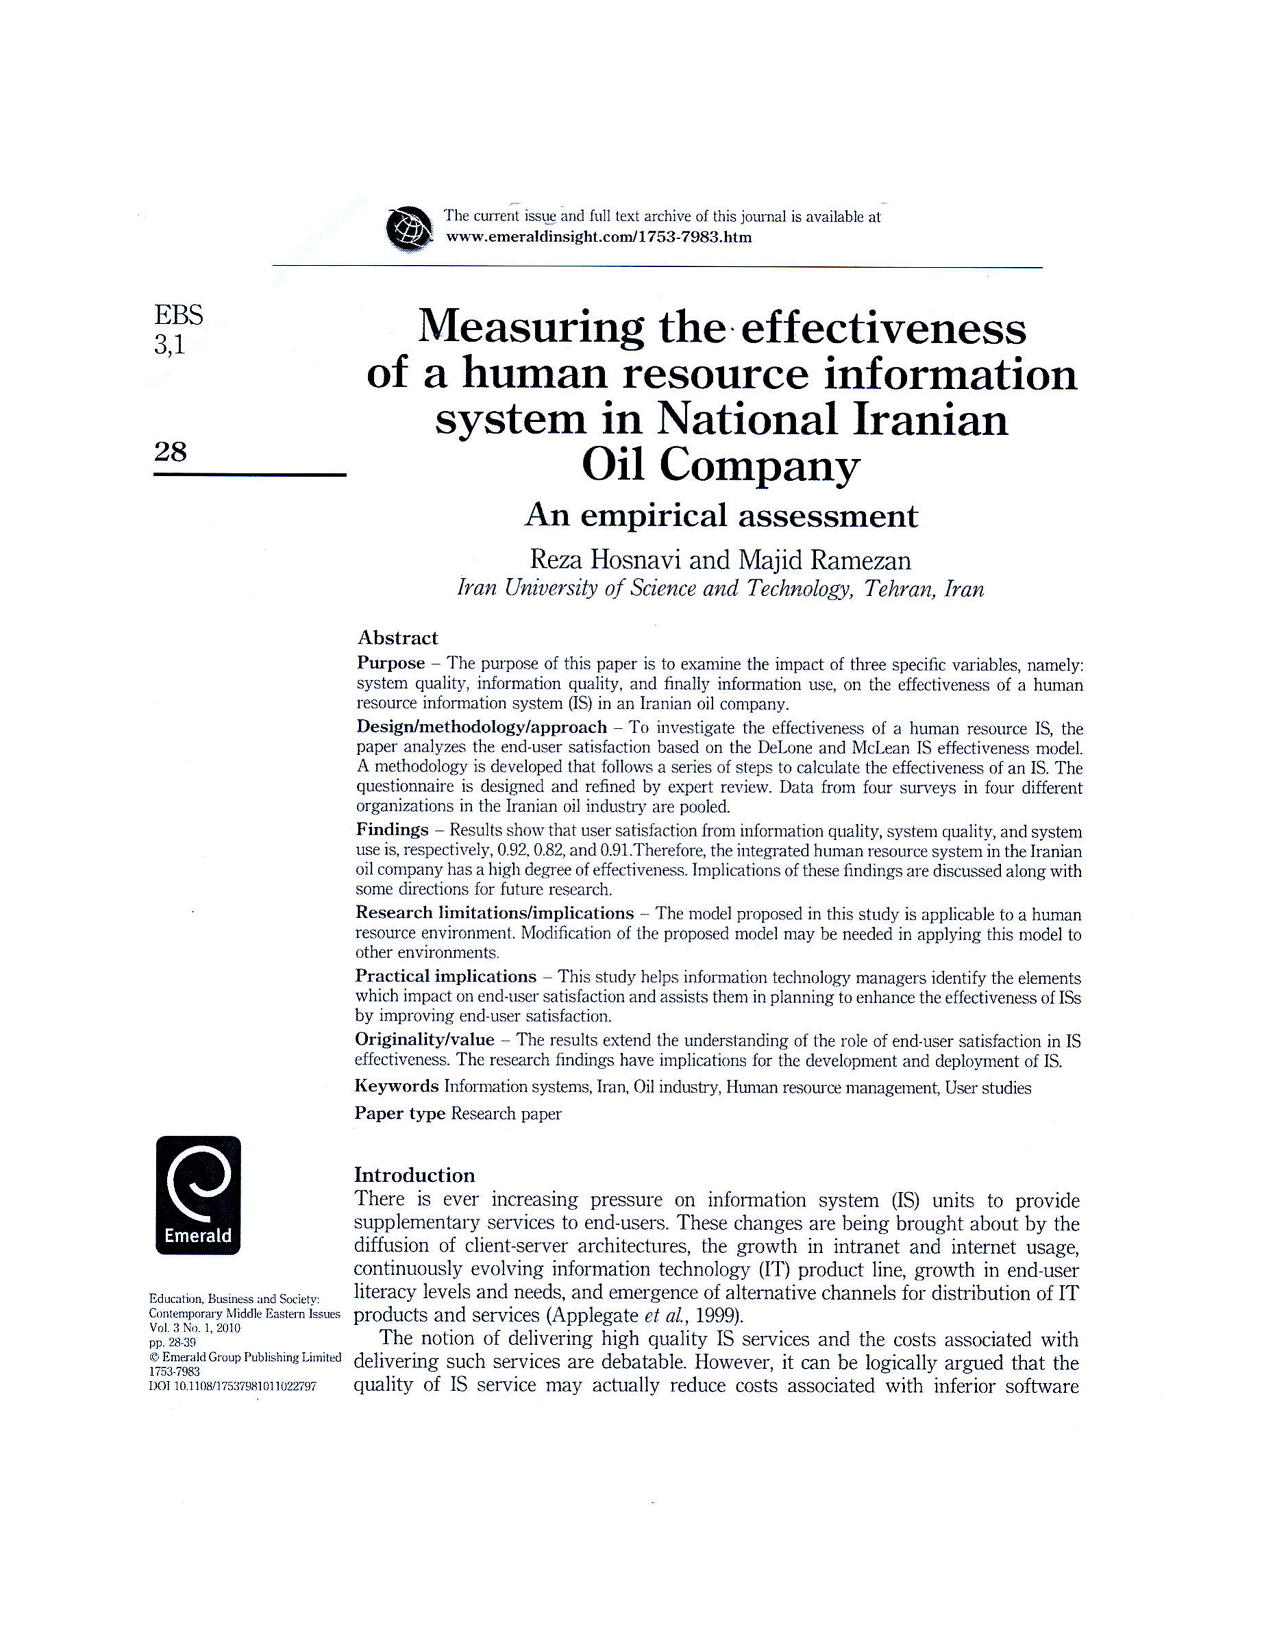 Measuring the effectivenss of a human resource in for mation system in National Iranian Oli Comany10